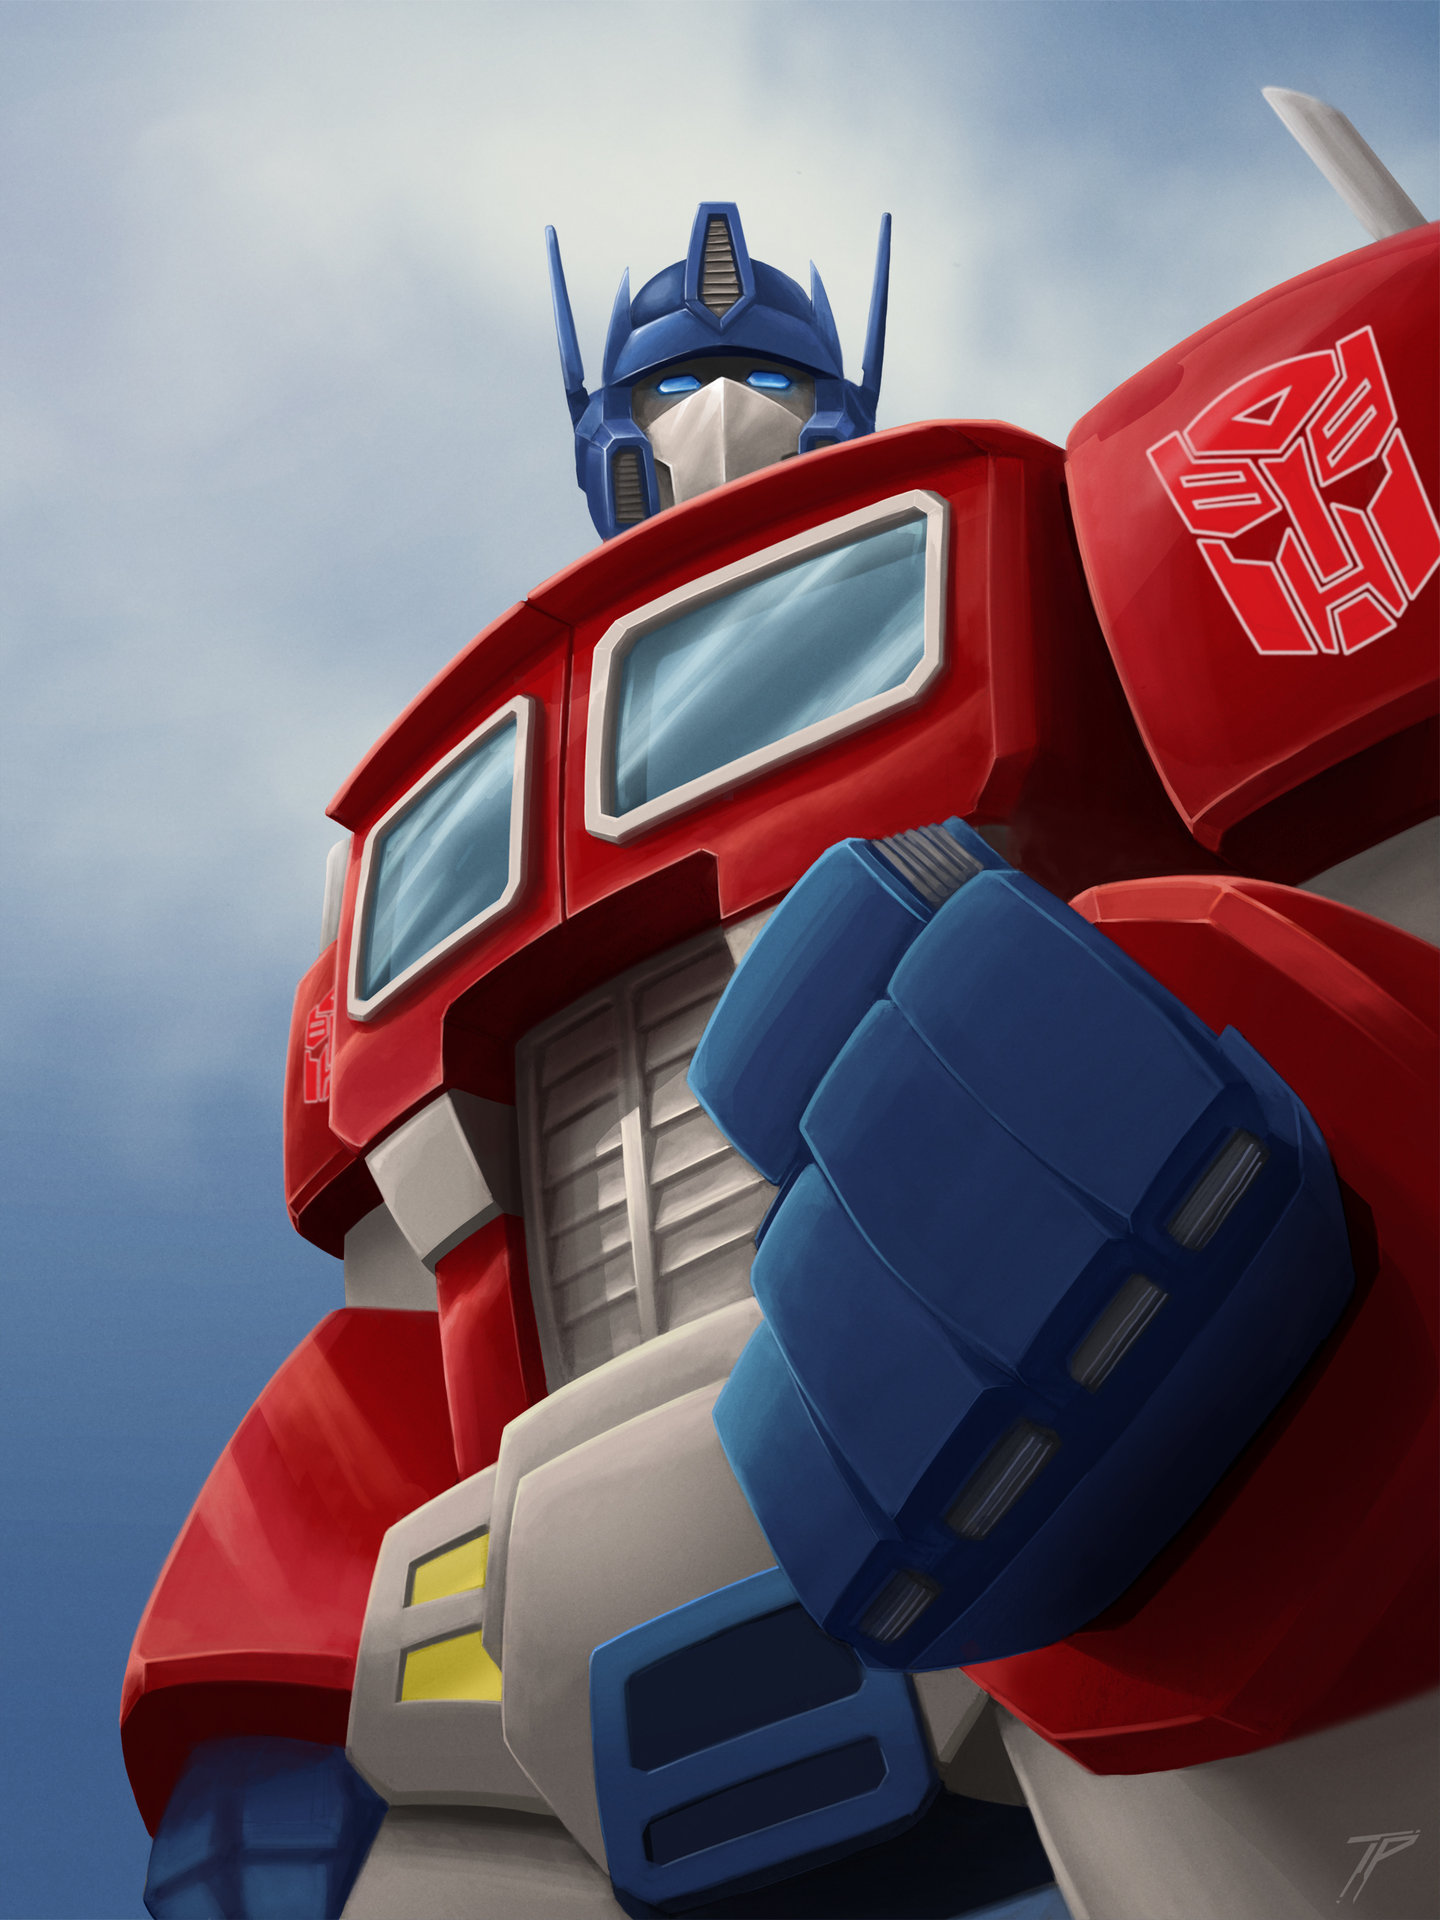 Optimus prime midres